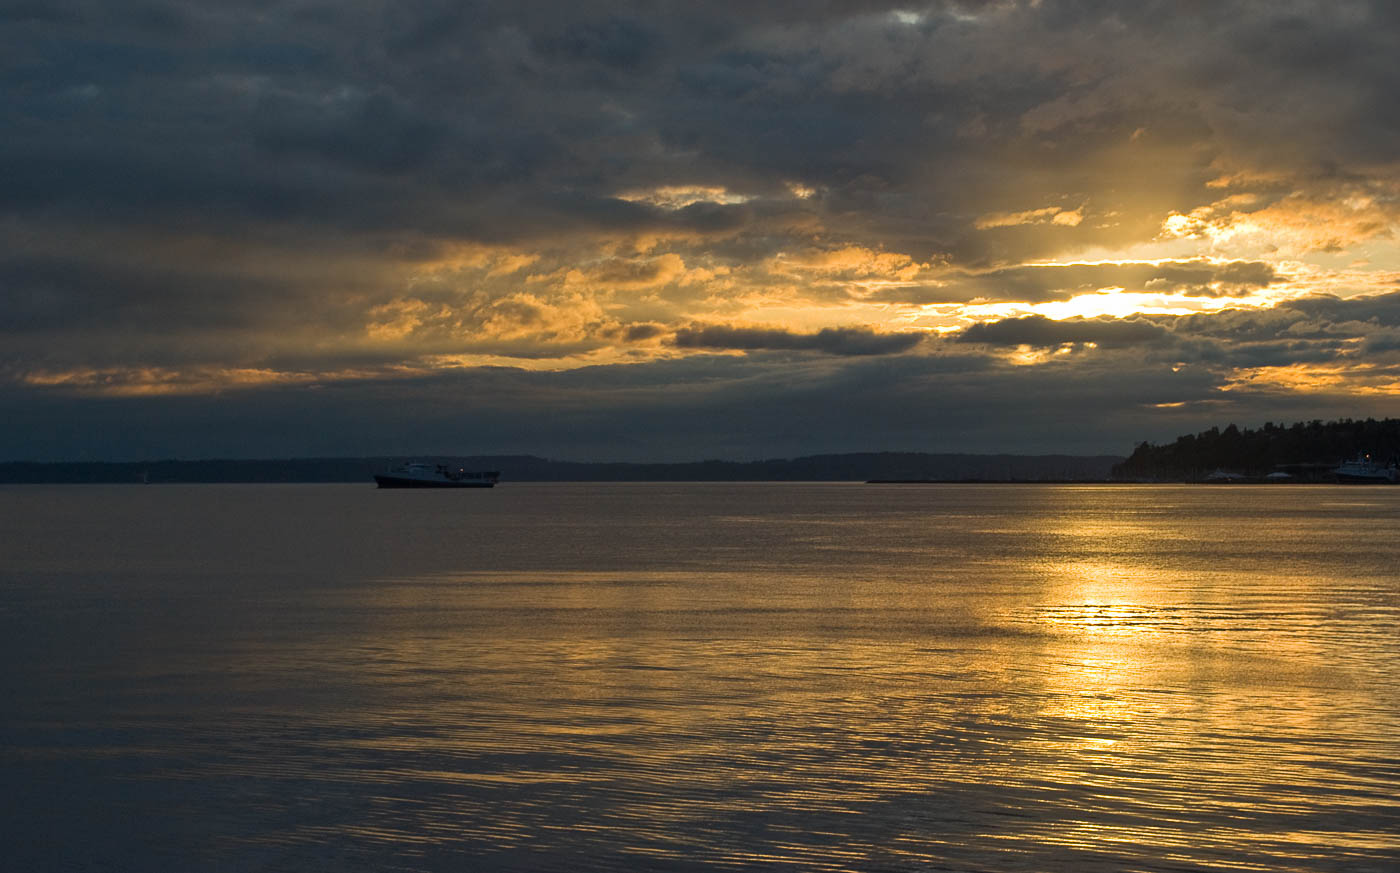 Last light, Puget Sound | Pono Images